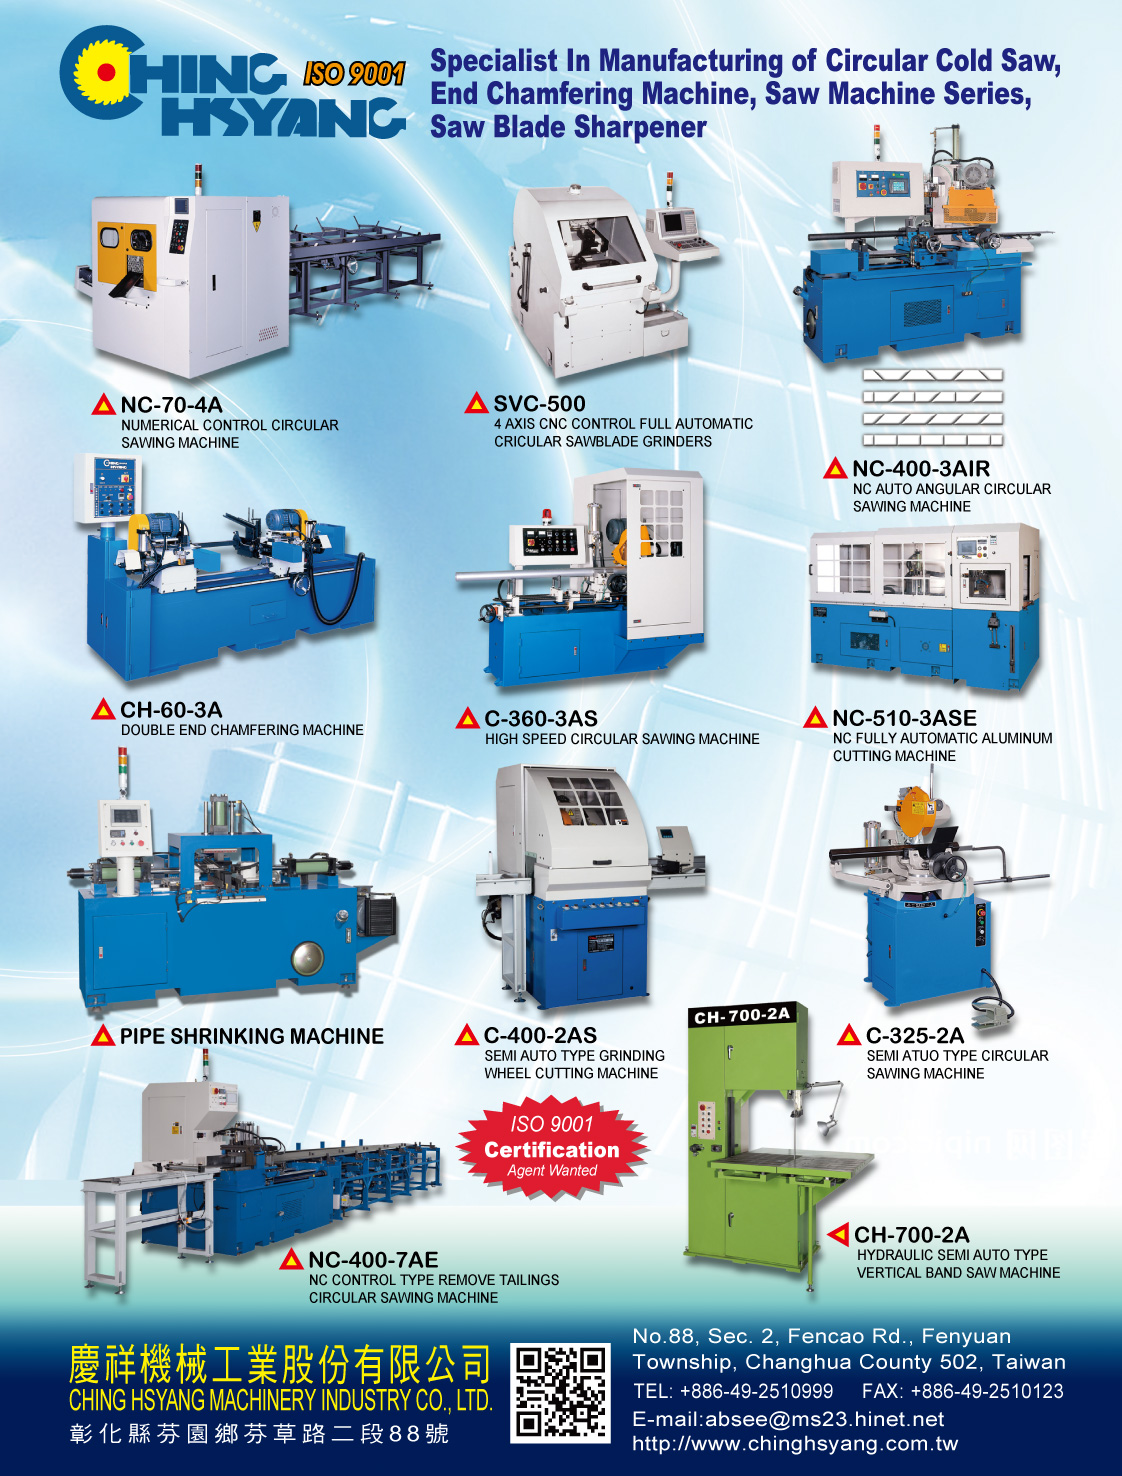 CHING HSYANG MACHINERY INDUSTRY CO., LTD.